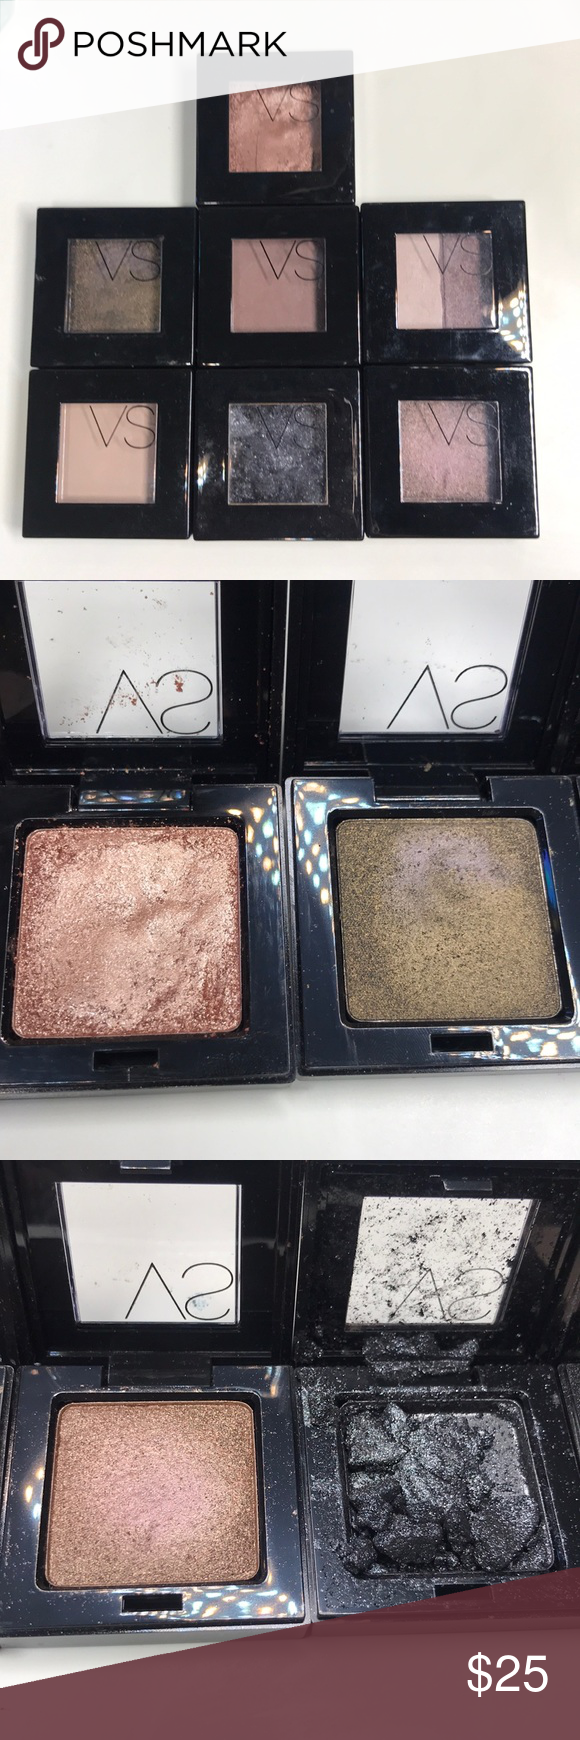 d6d01024273ab 7 pc Victoria Secret eyeshadow singles 7 single eyeshadows from ...